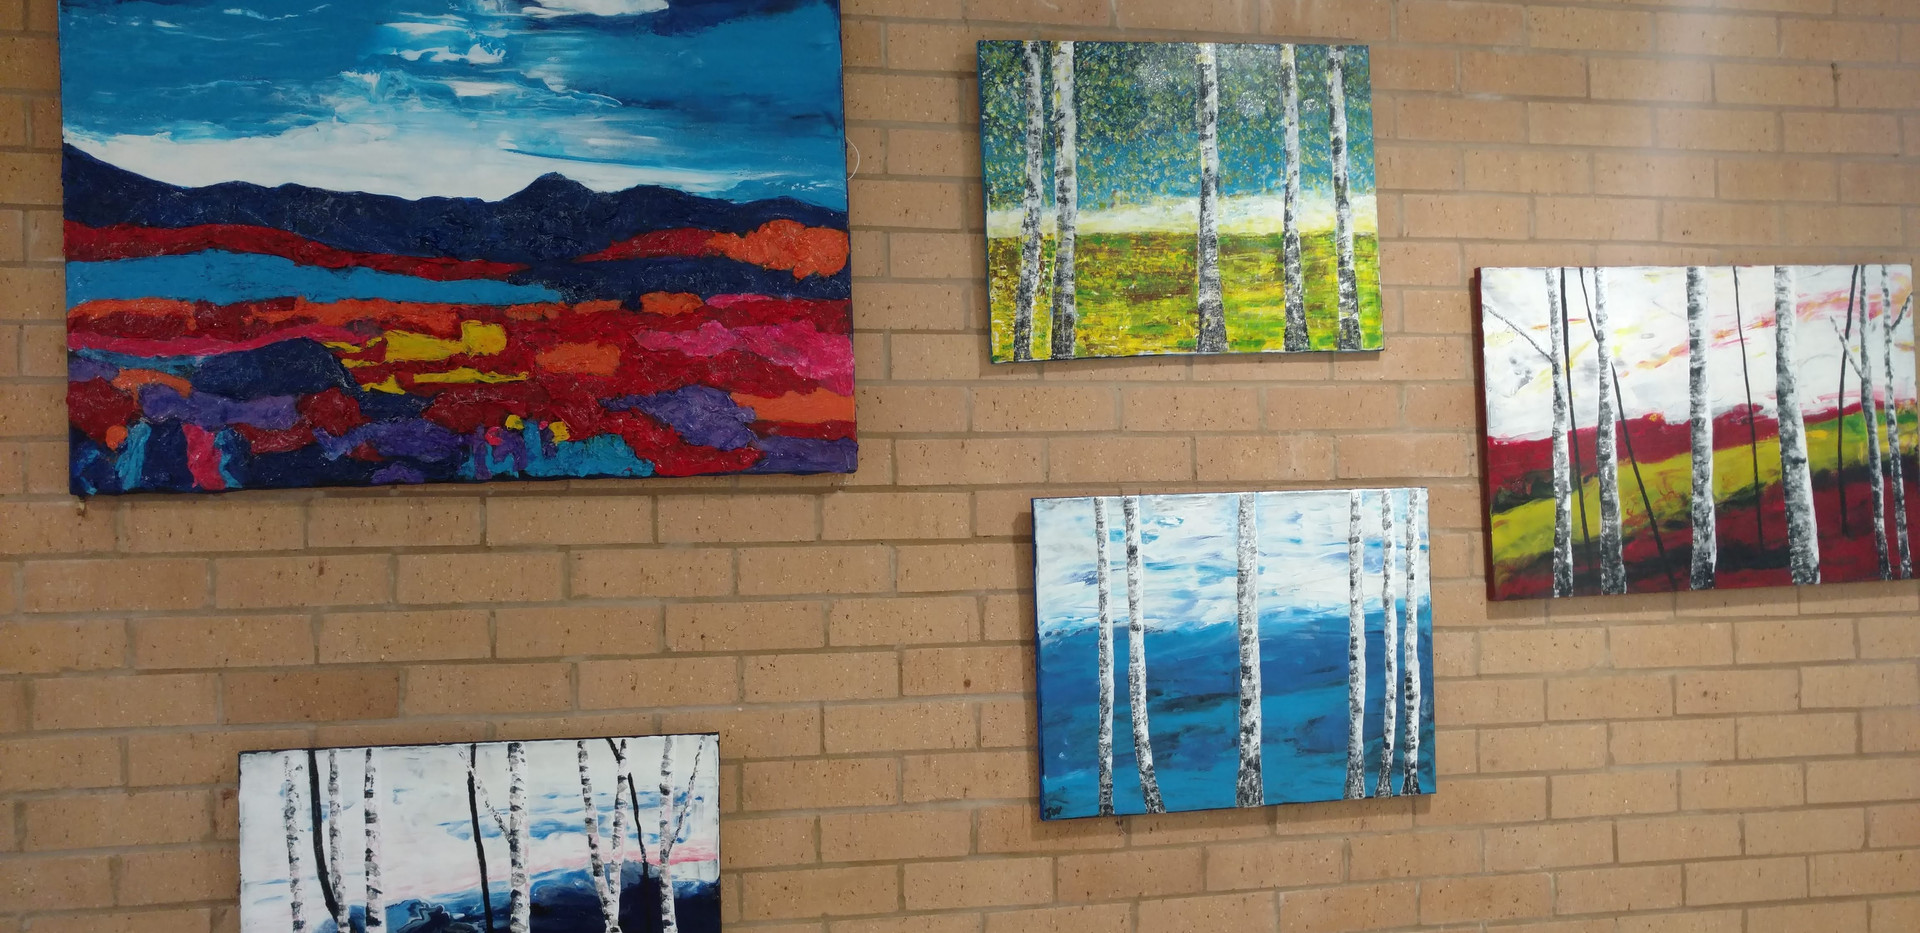 Silver birches. Everyone loved this project